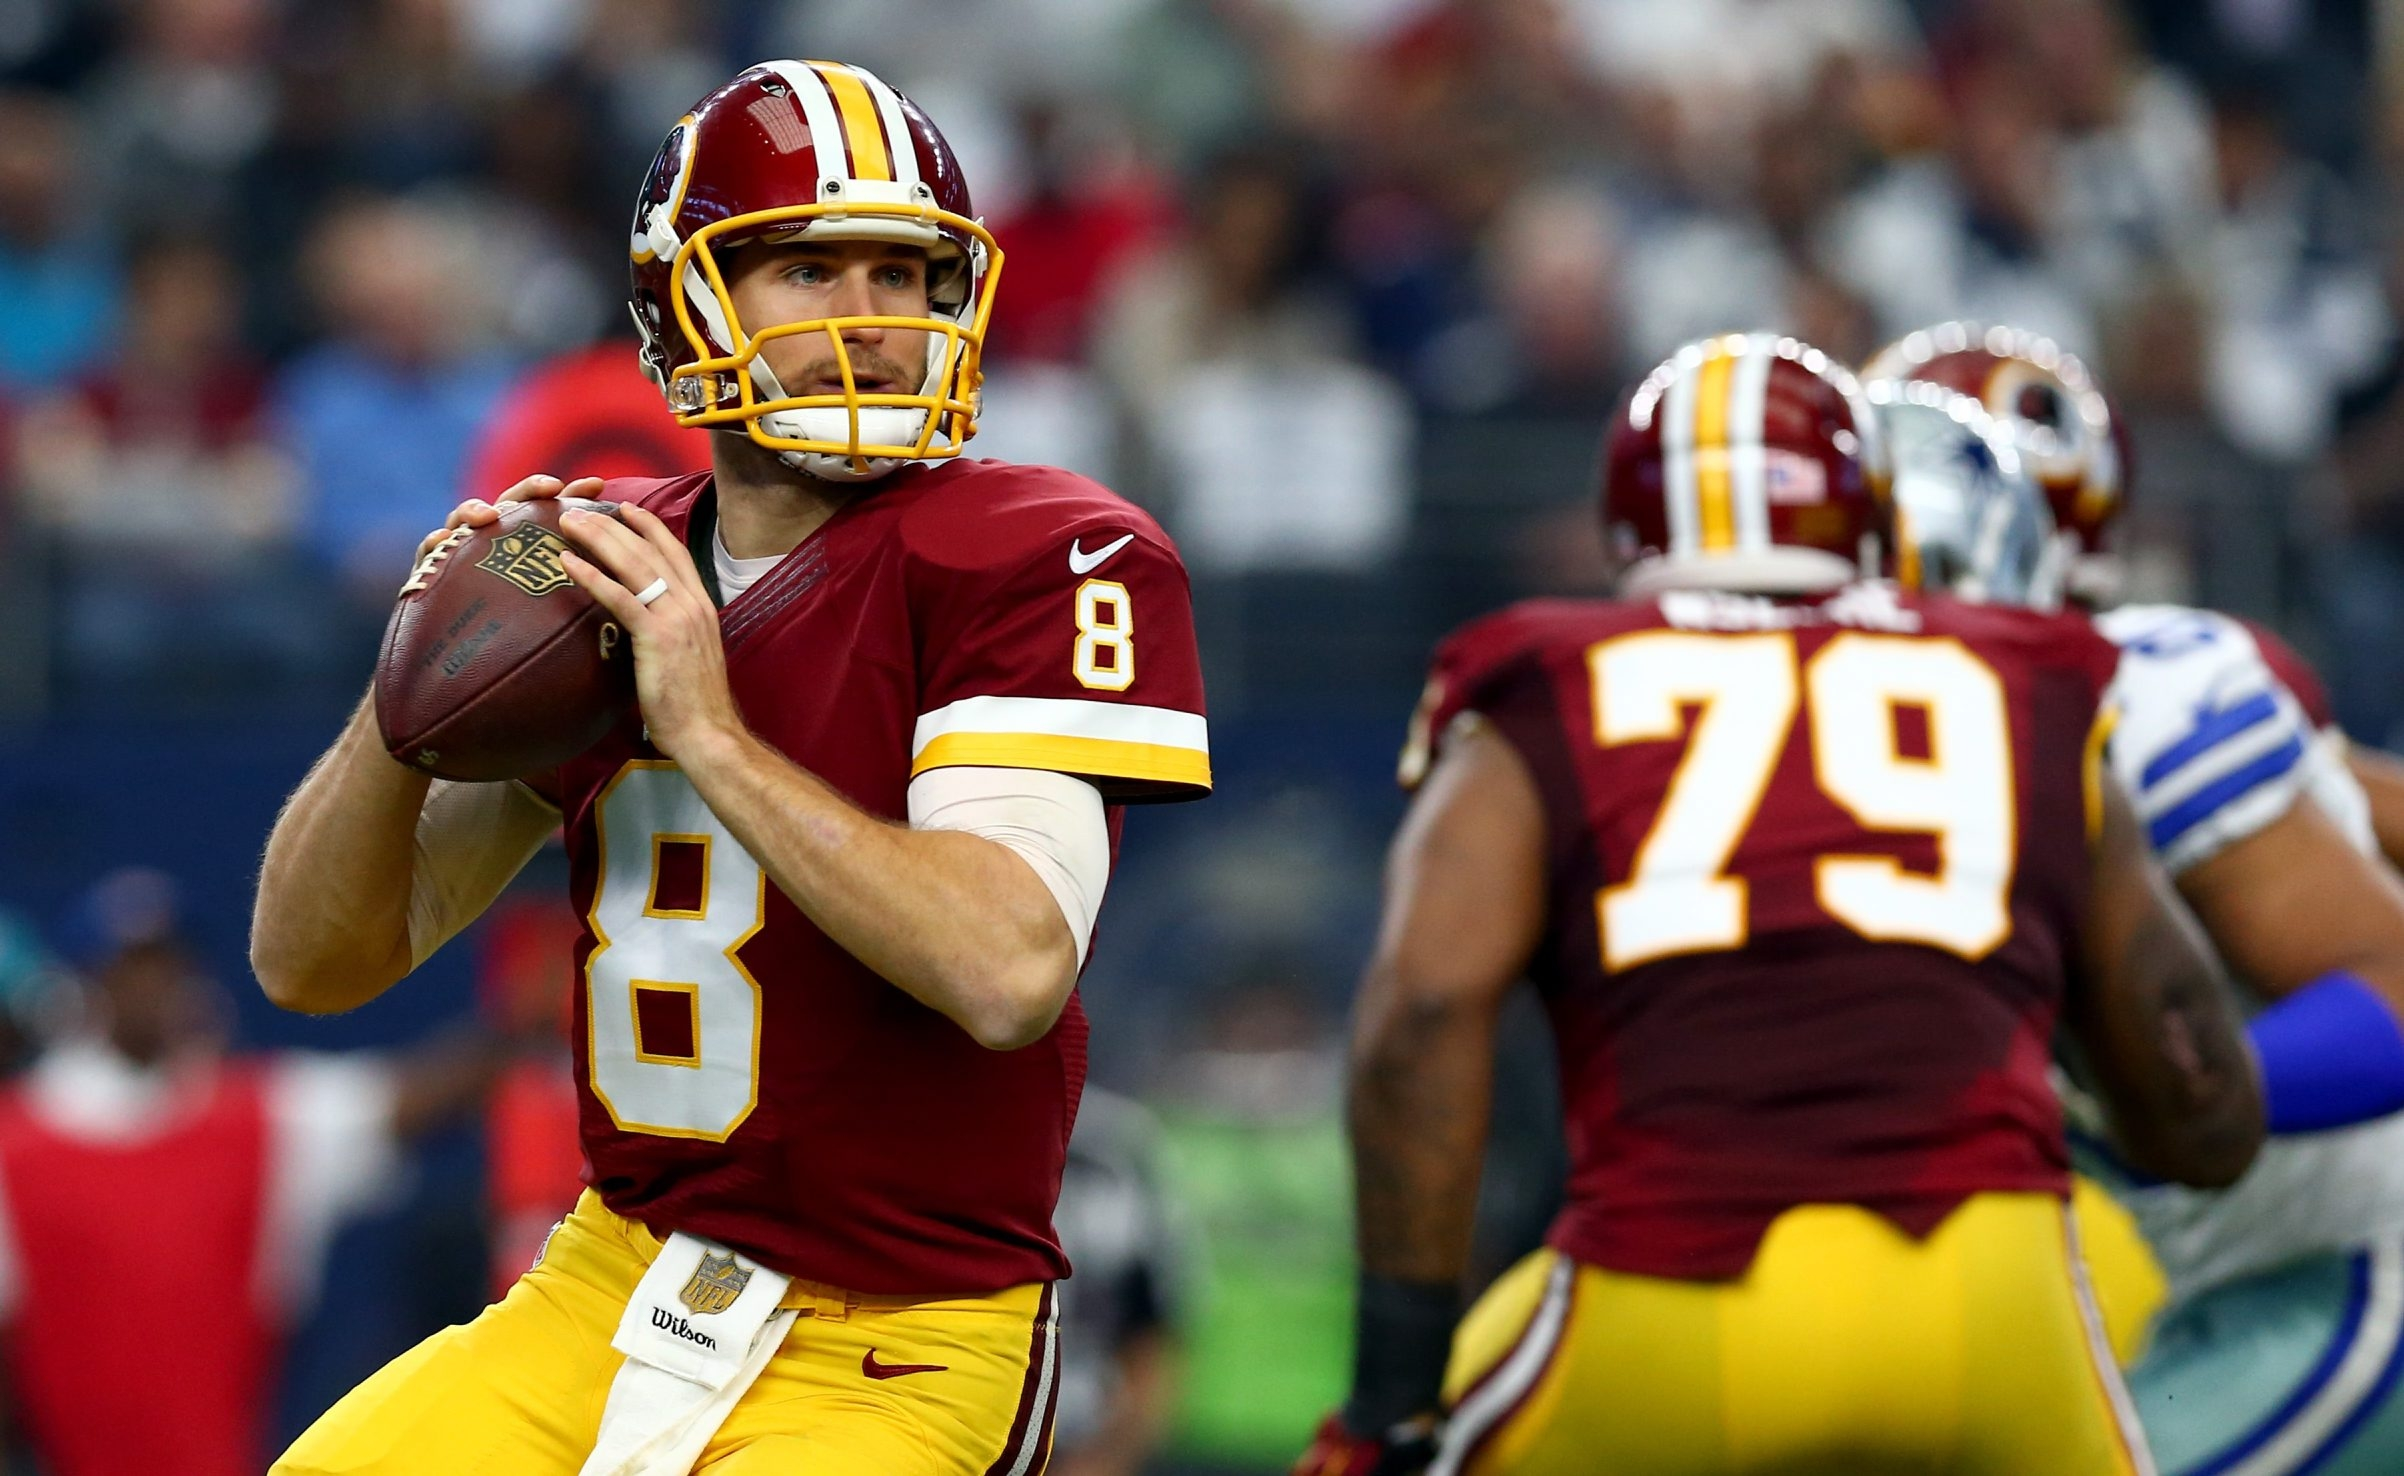 The Redskins used their franchise tag on quarterback Kirk Cousins, who gets a once-year contract that guarantees him $19.95 million.